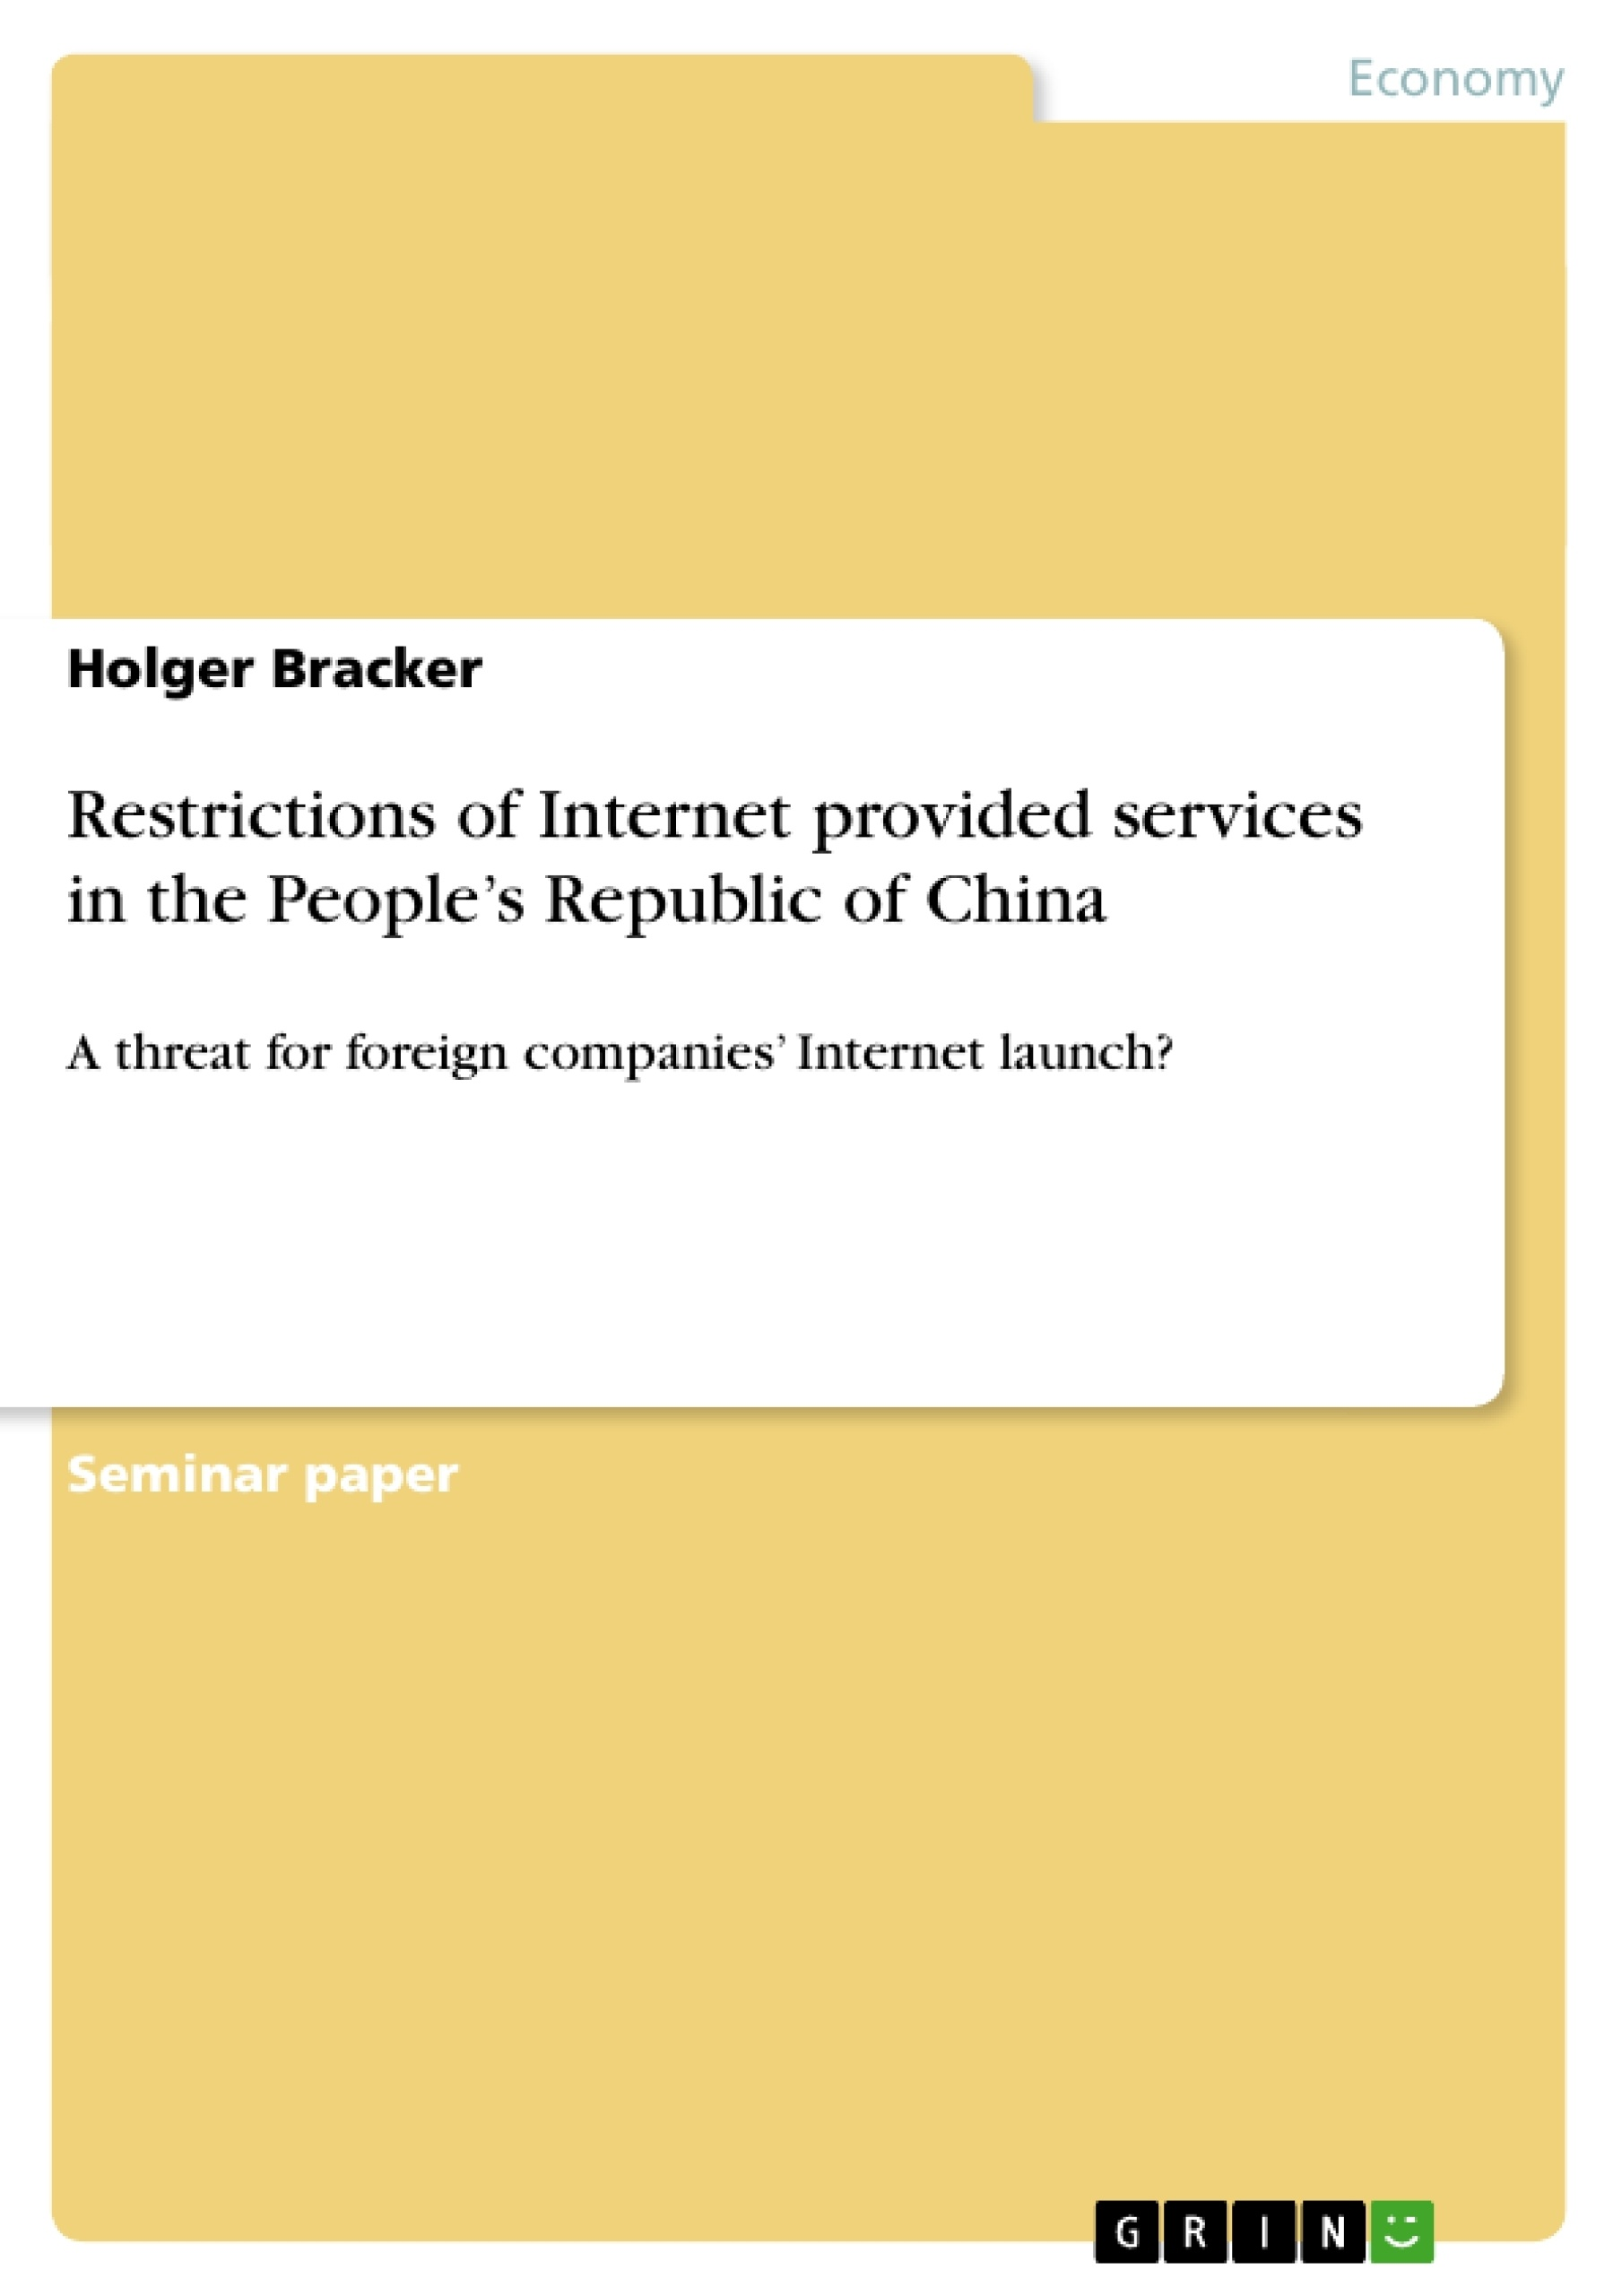 Title: Restrictions of Internet provided services  in the People's Republic of China